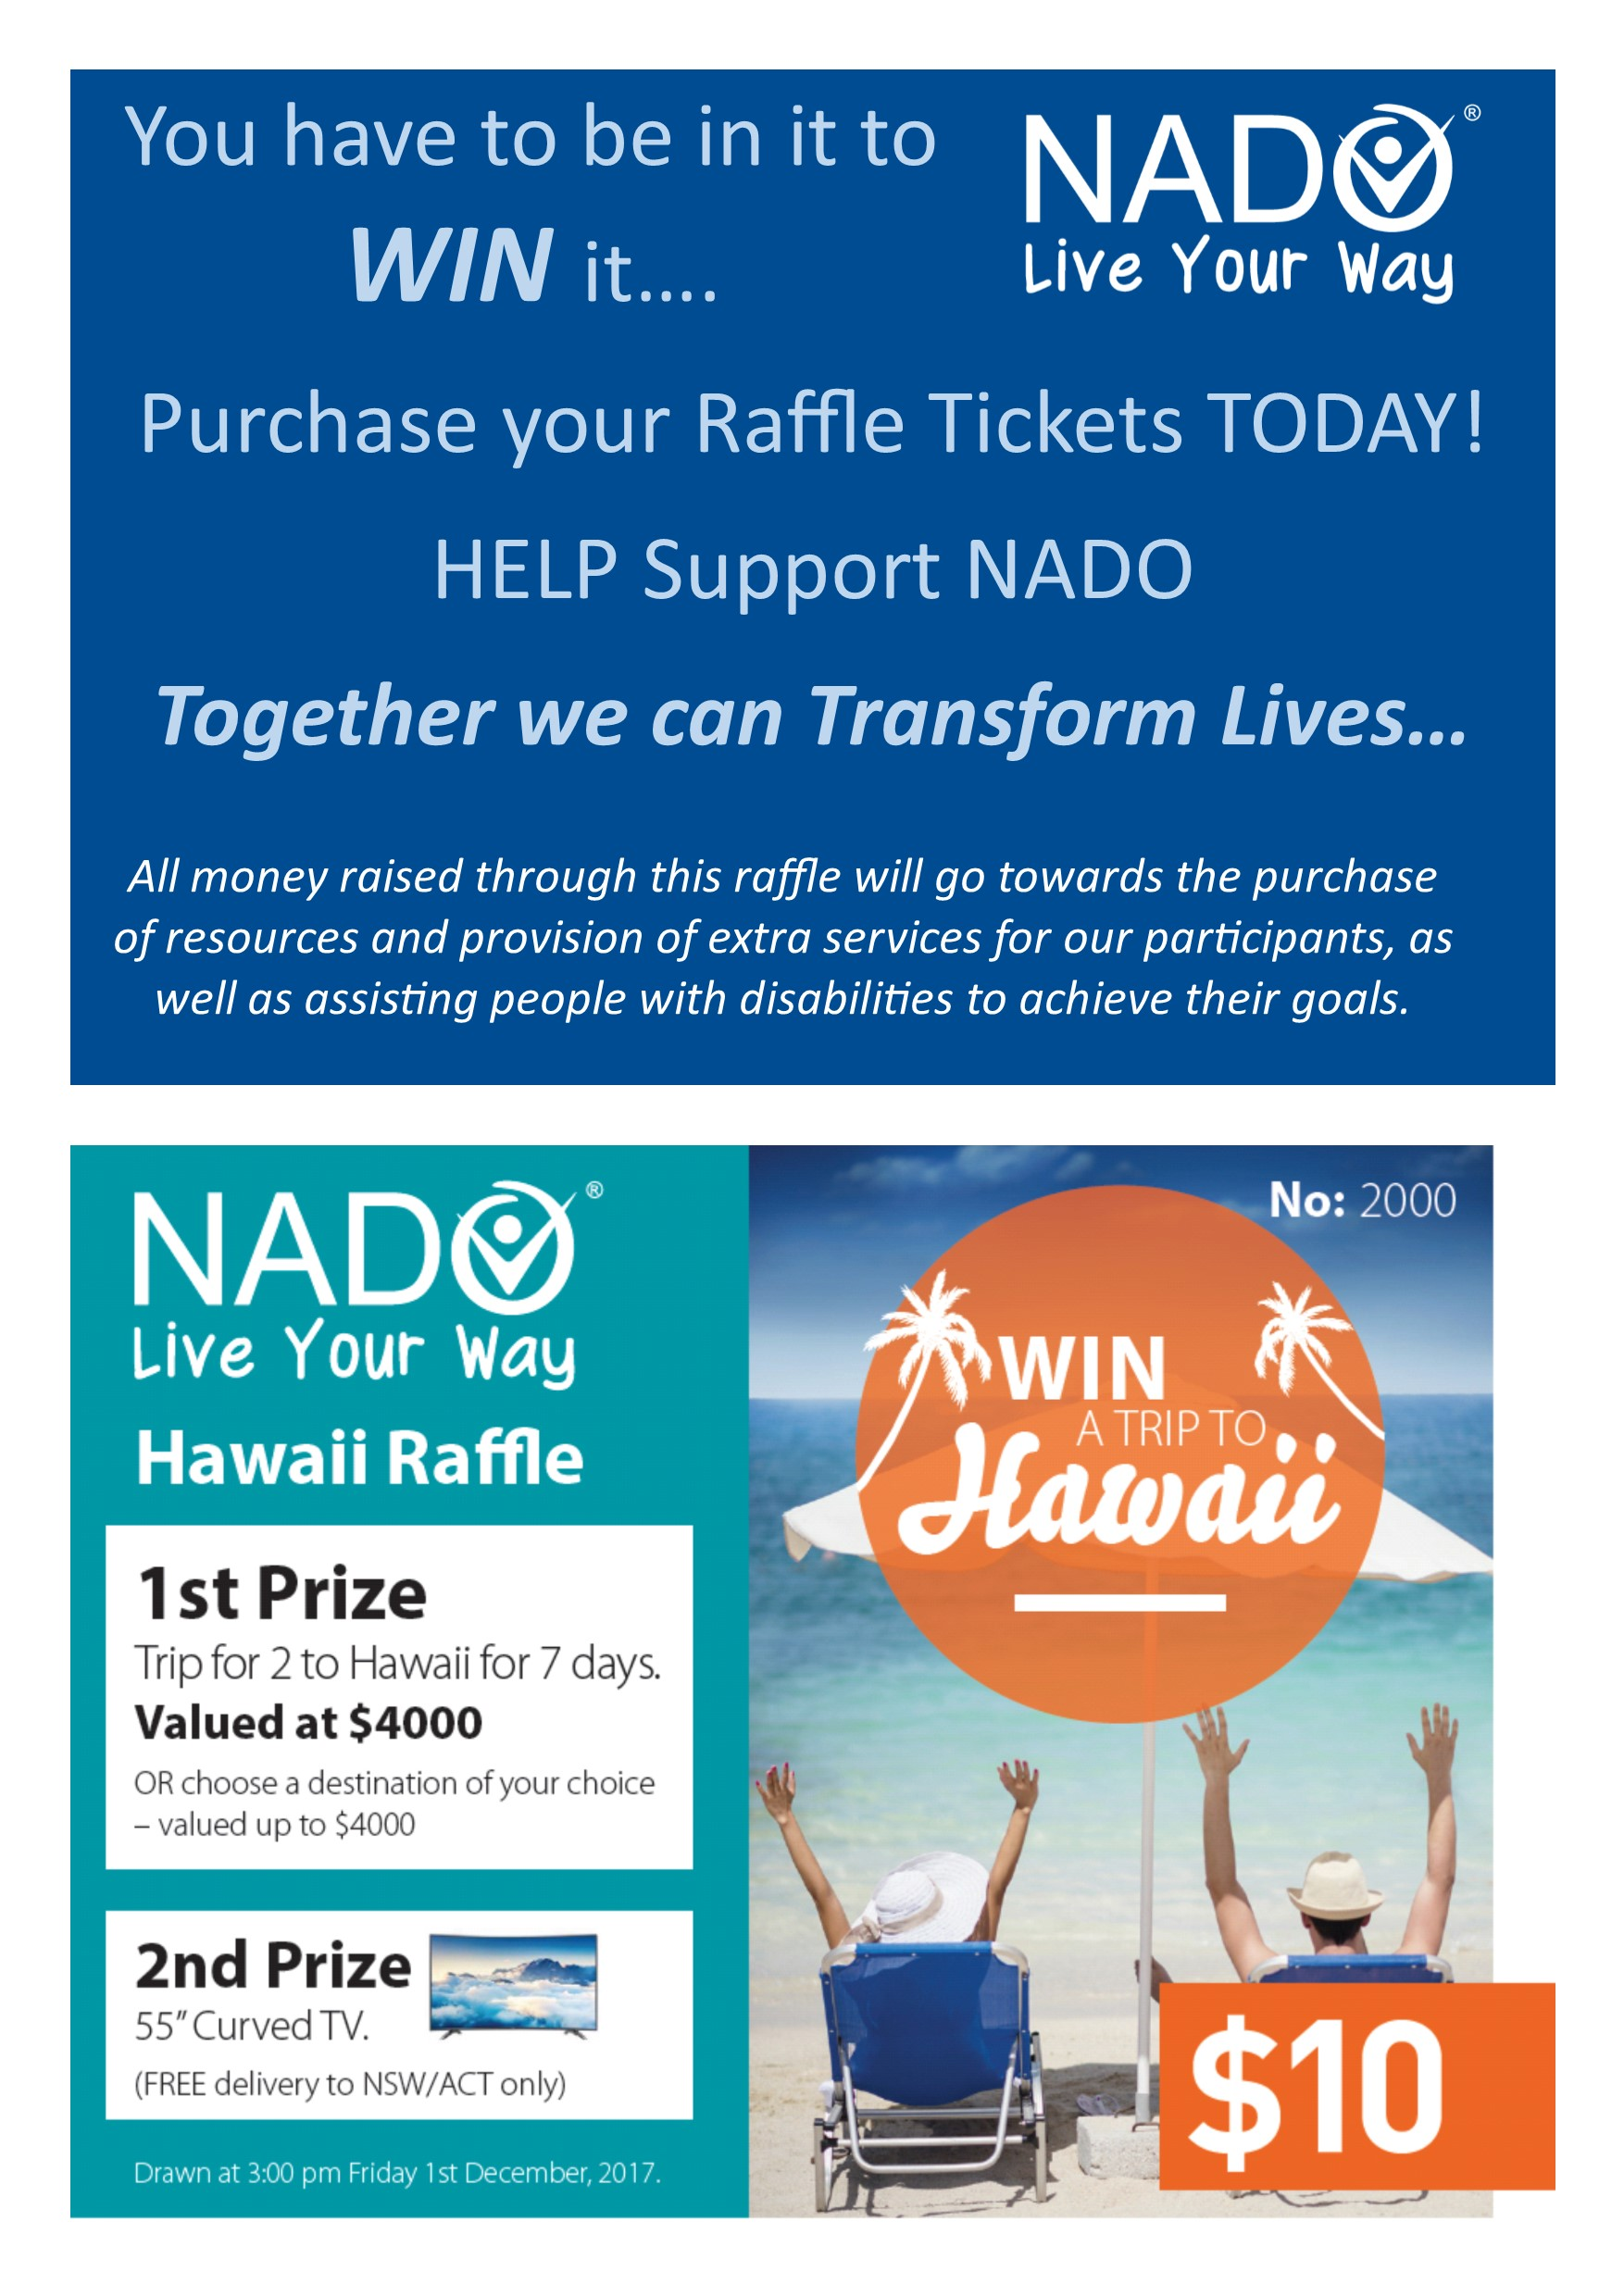 Win a Trip to Hawaii! Purchase your Raffle ticket Today!